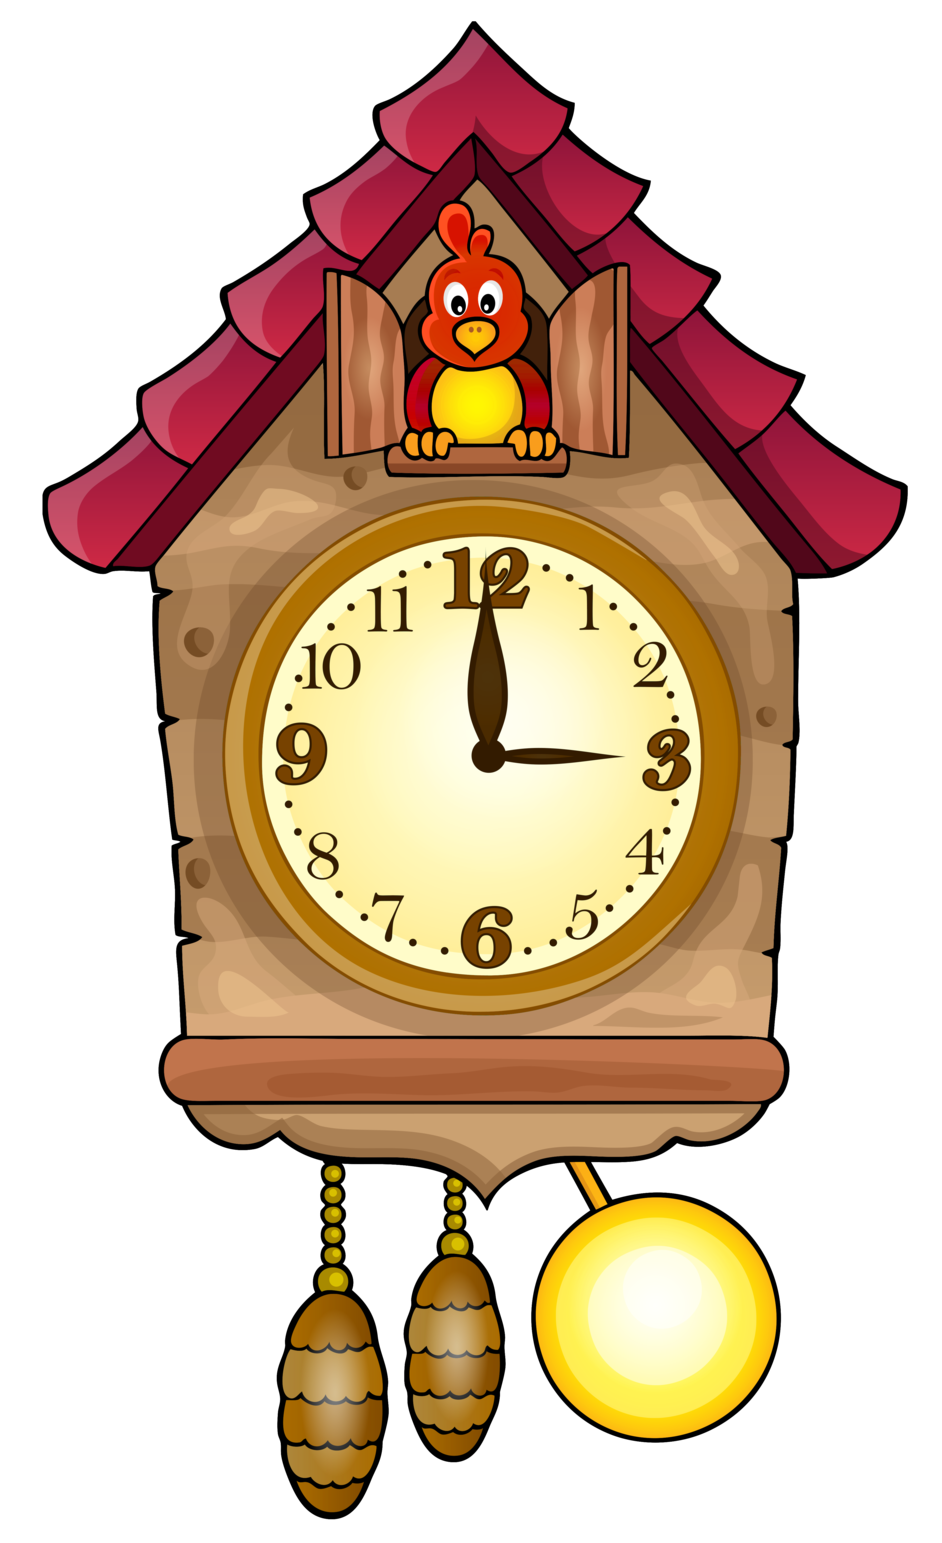 Heart clock clipart picture library Cute Cuckoo Clock PNG Clip Art picture library